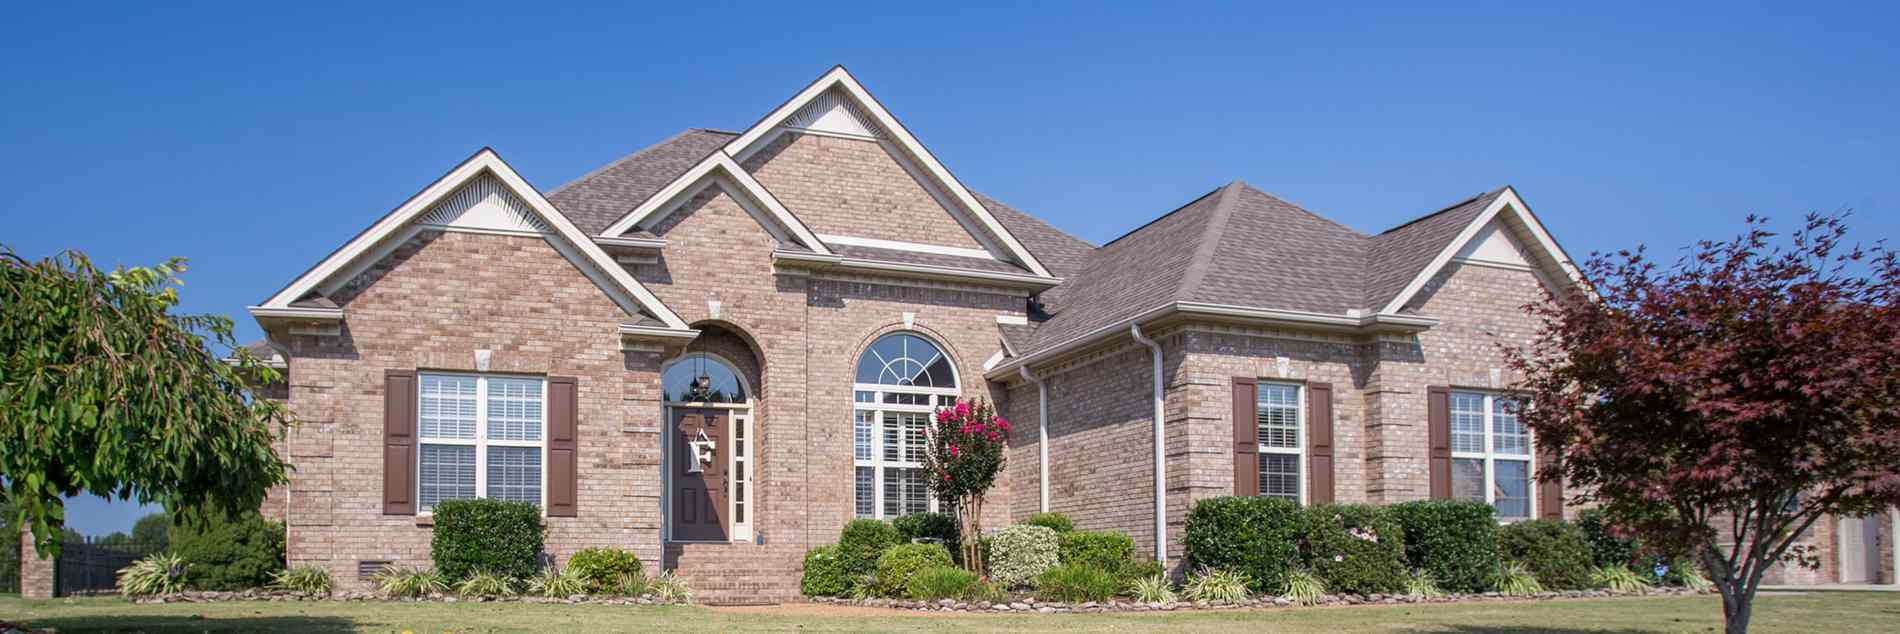 Homes for Sale in Huntsville AL